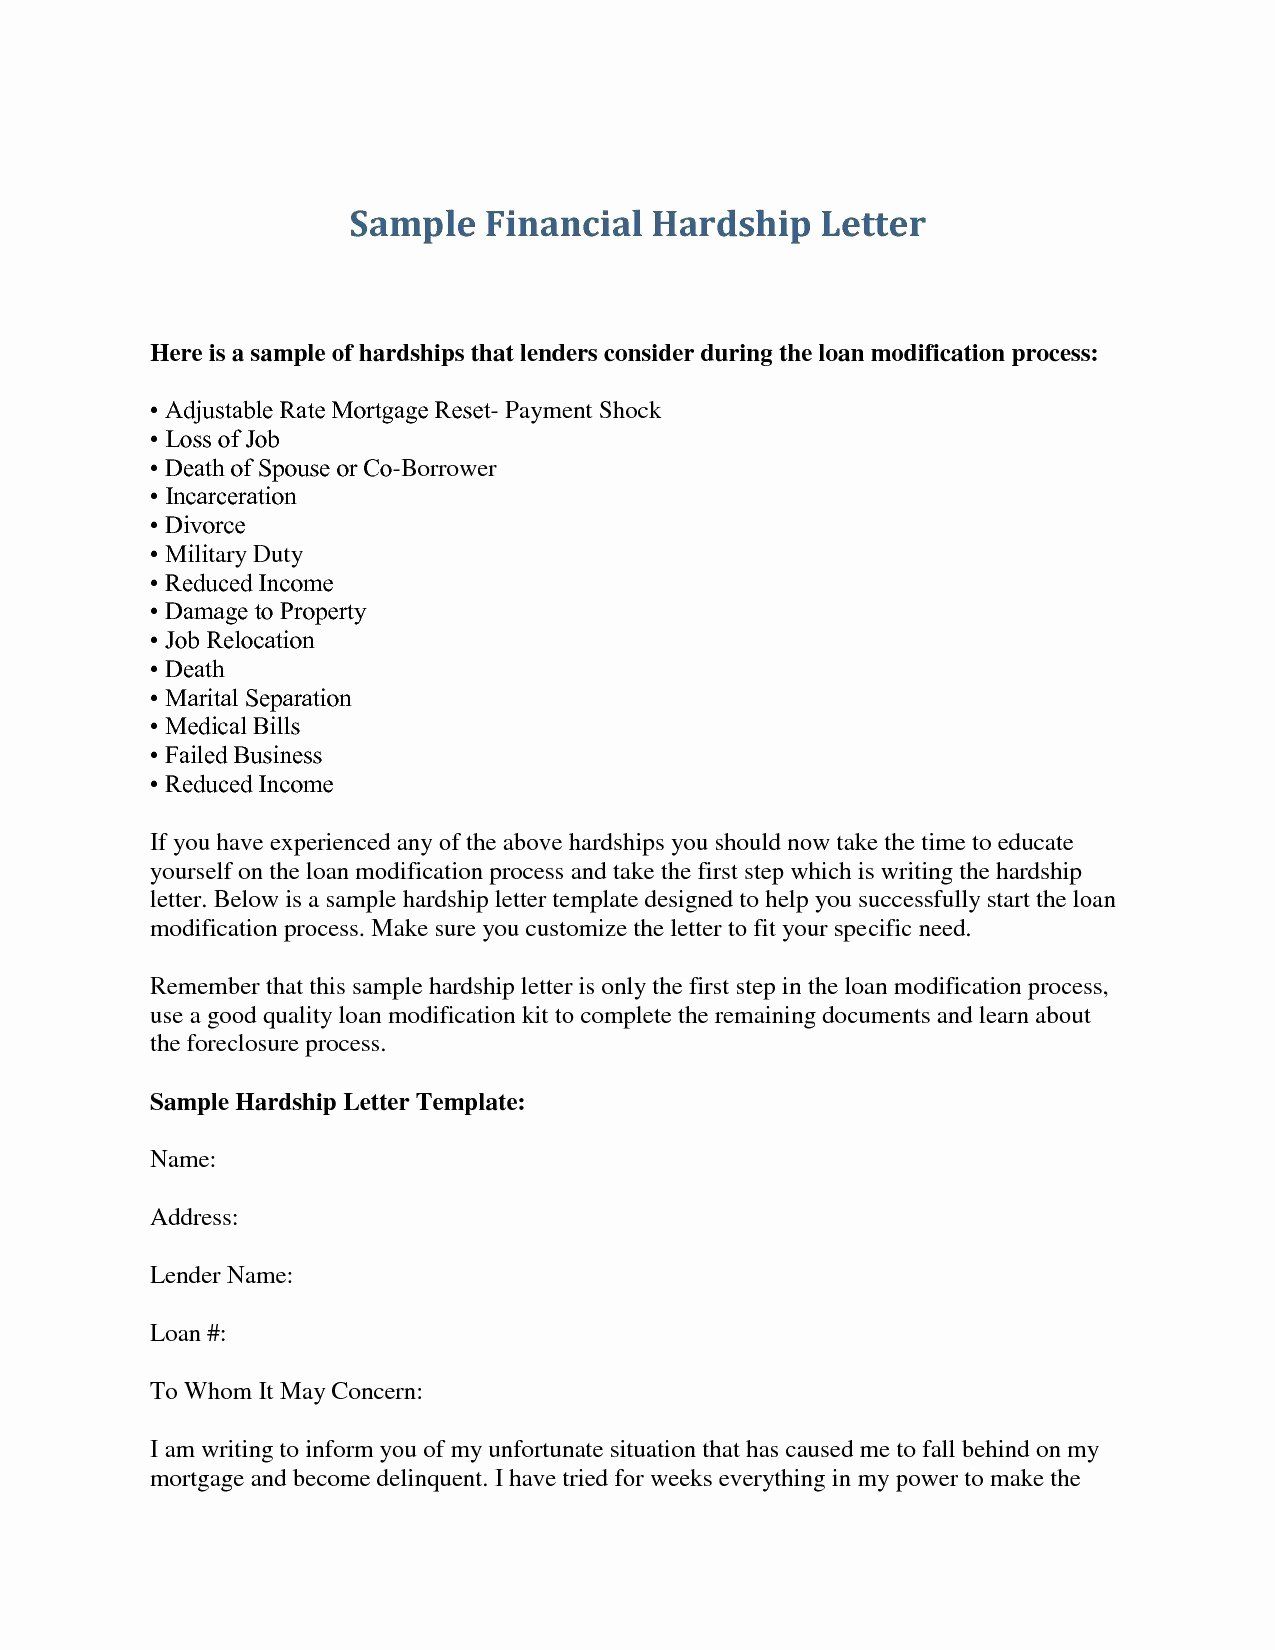 Payment Shock Letter Example Awesome Mortgage Payment Shock Letter Template Collection